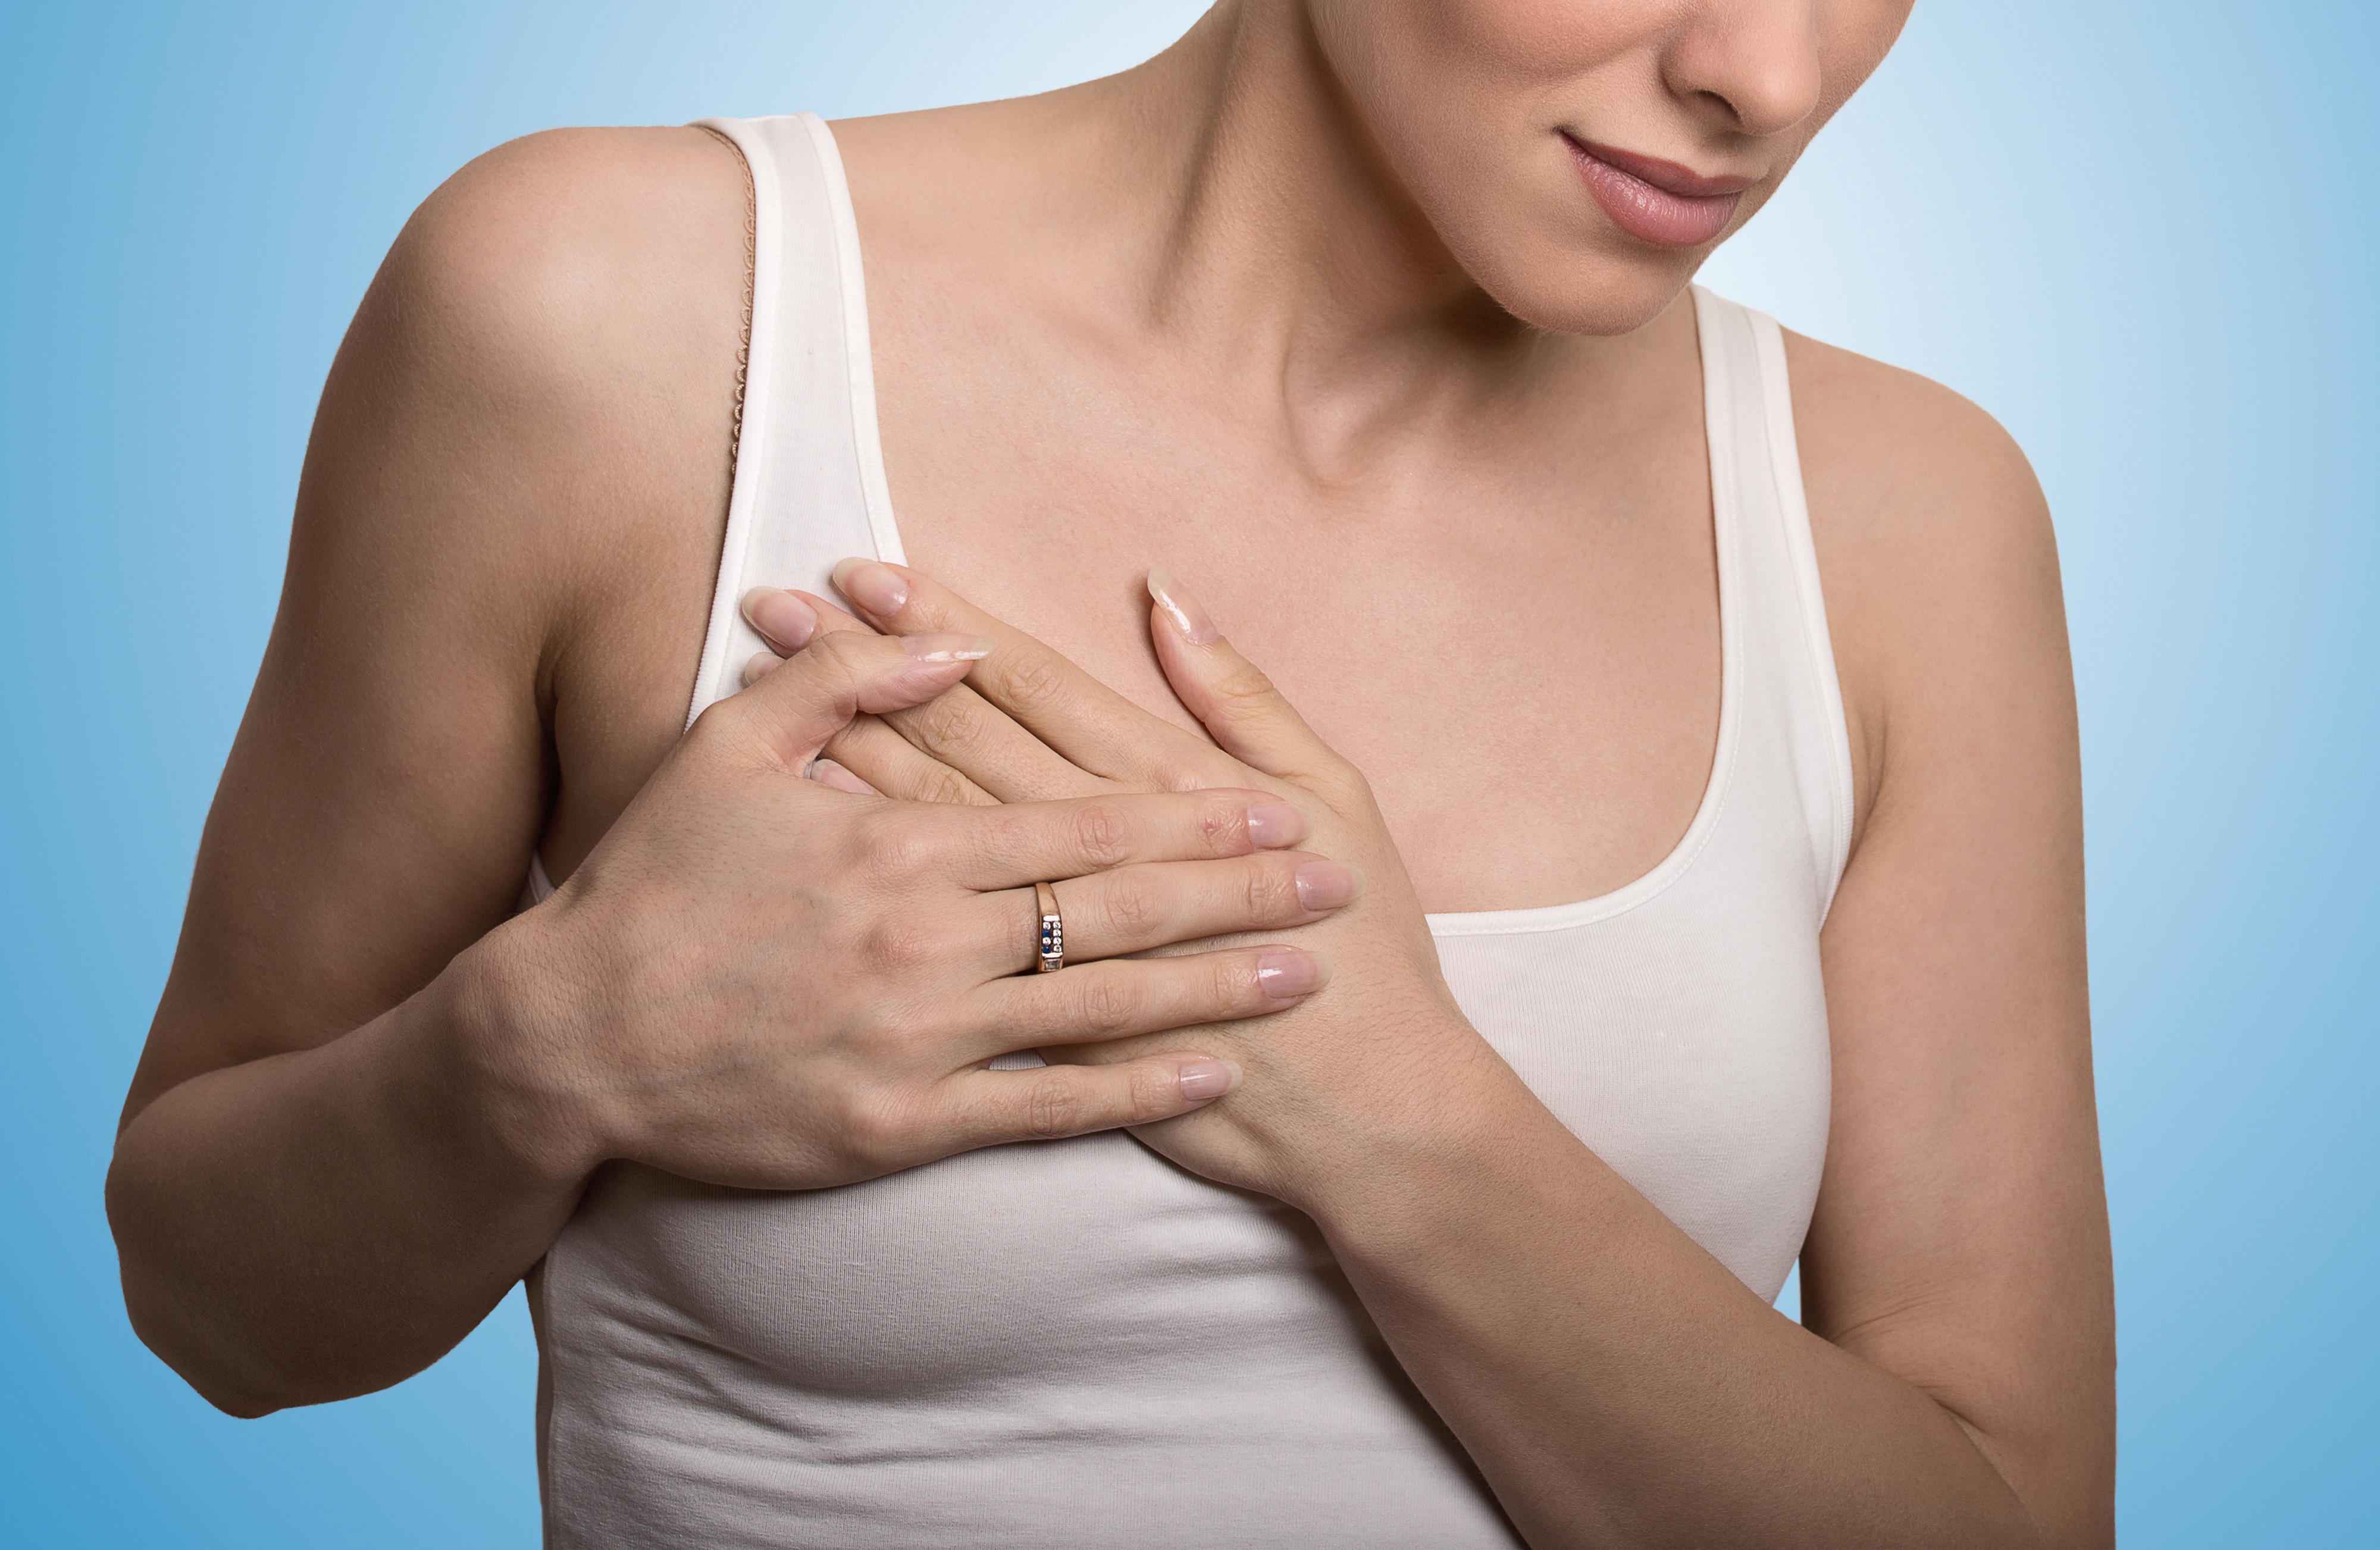 Woman with hands over breast area.